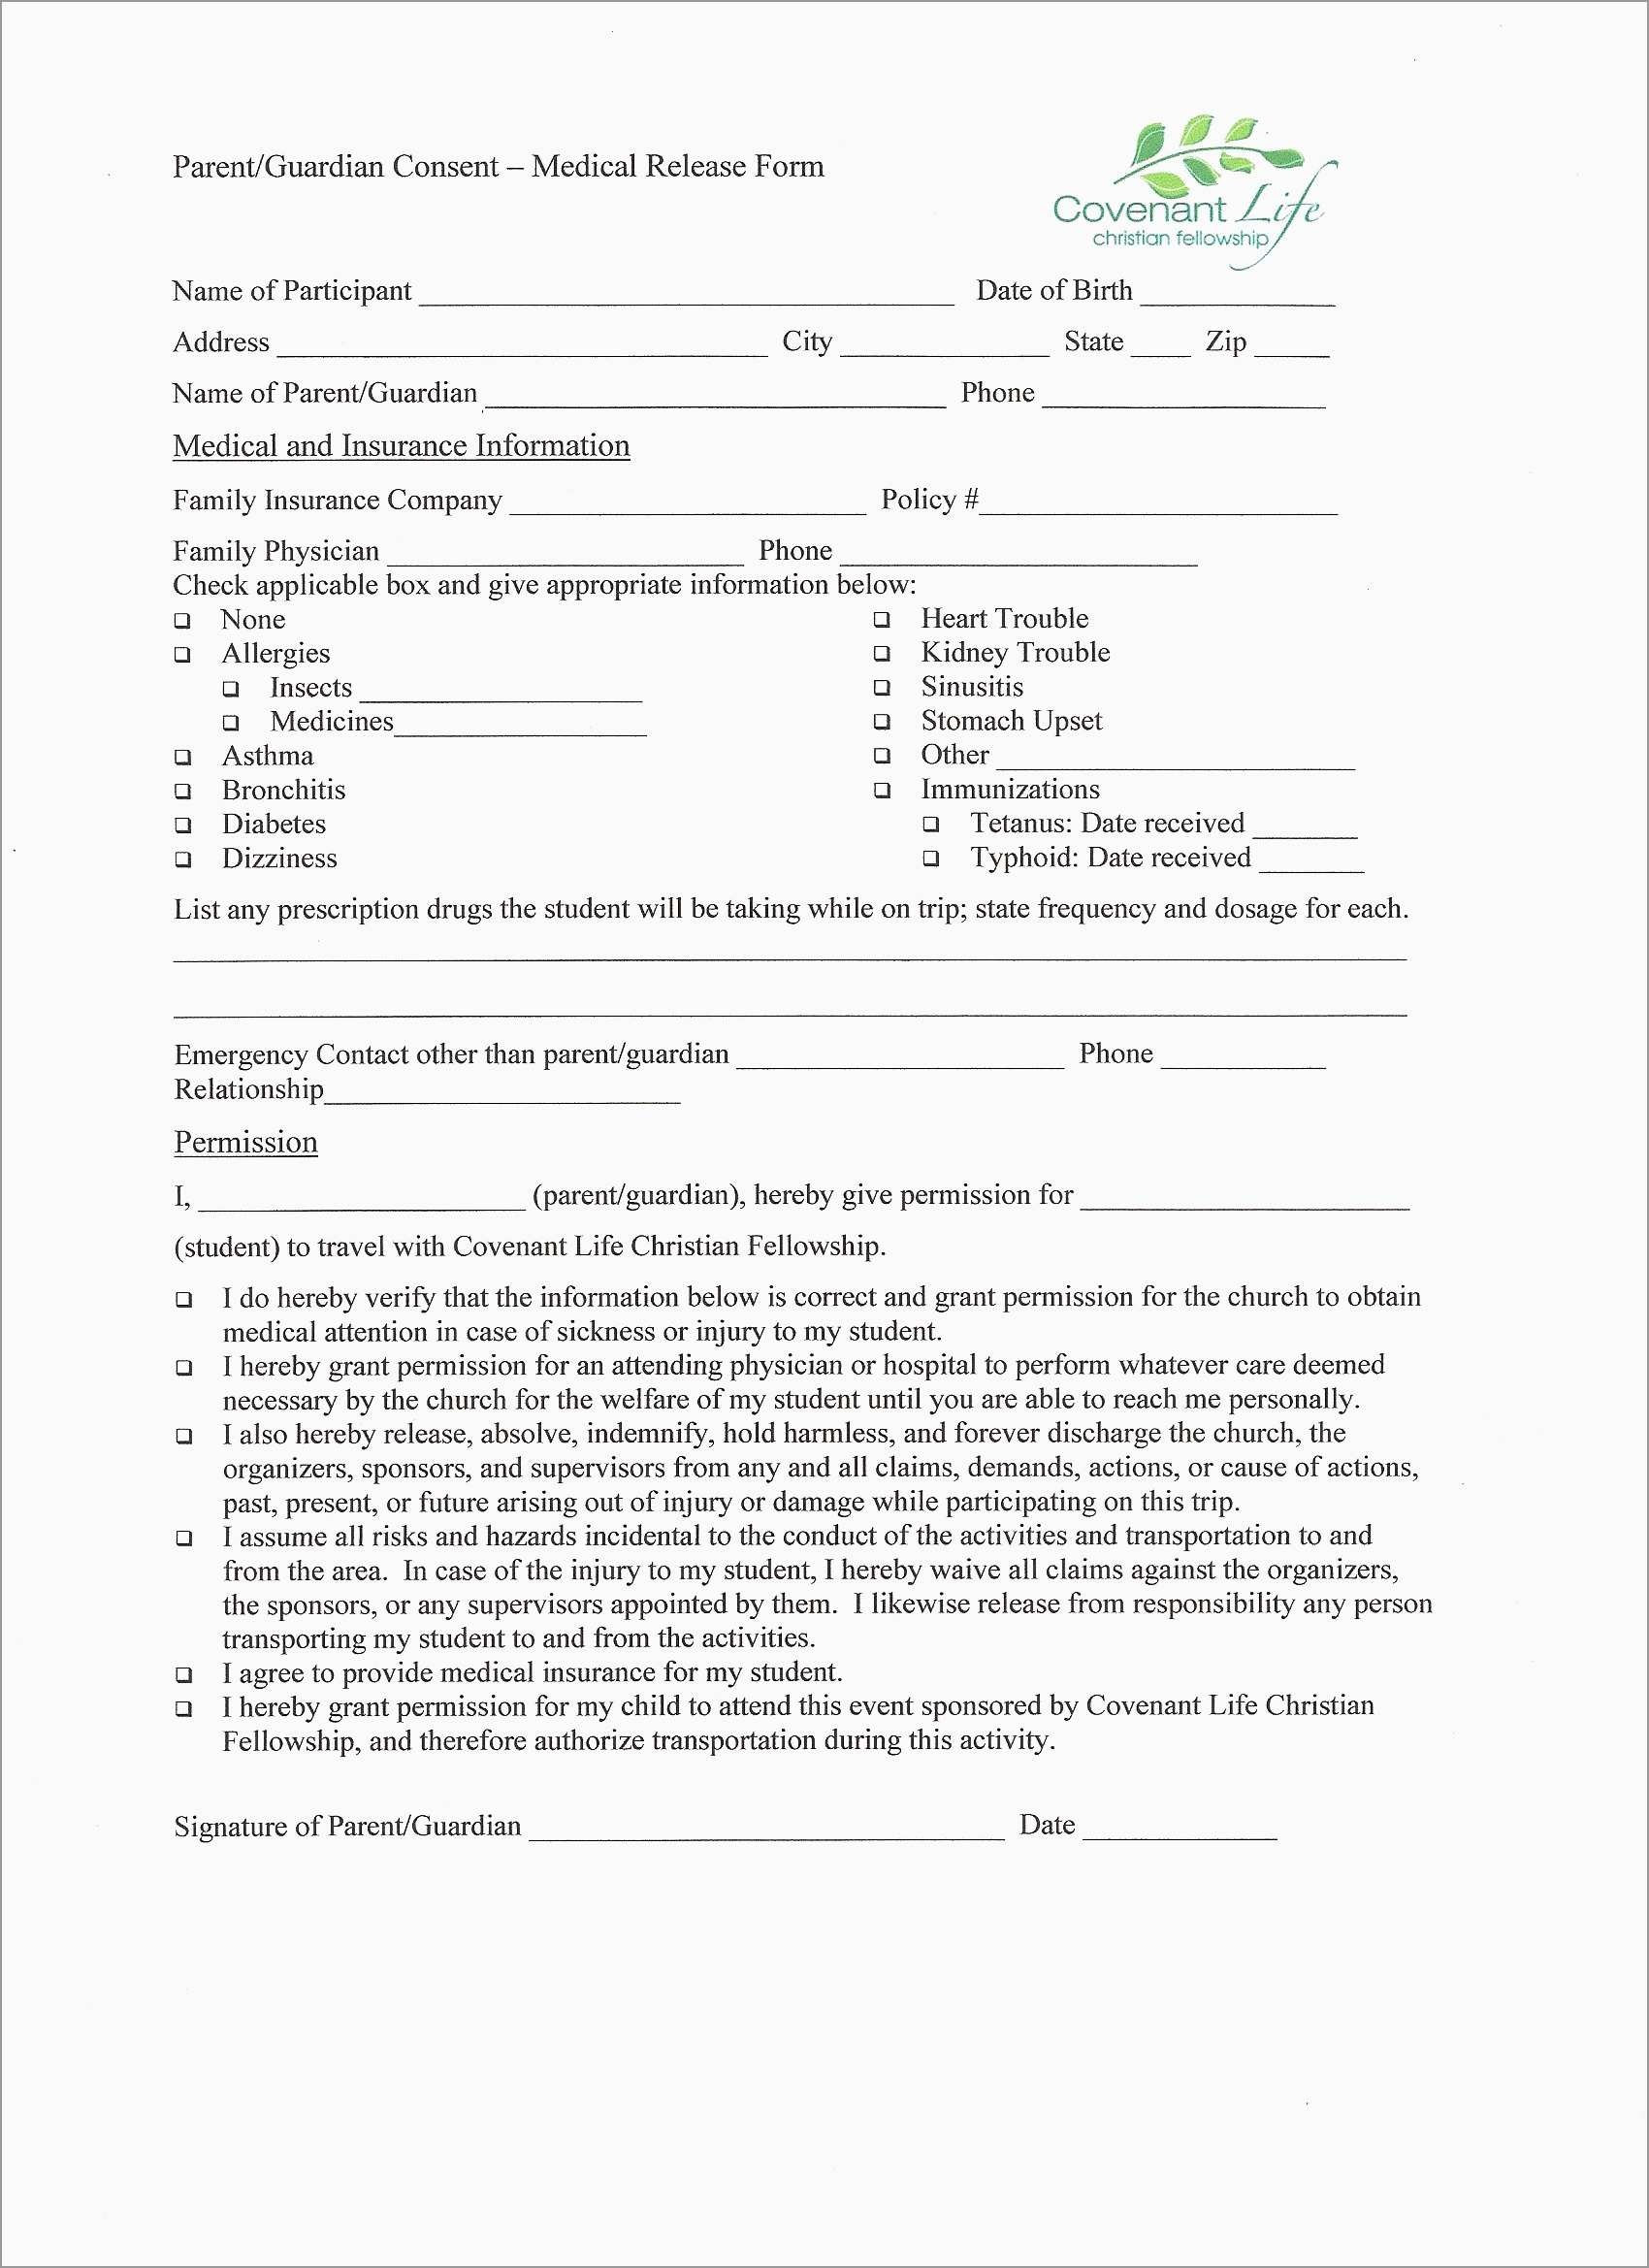 Free Medical Consent Form Template Elegant Medical Release Form - Free Printable Medical Release Form